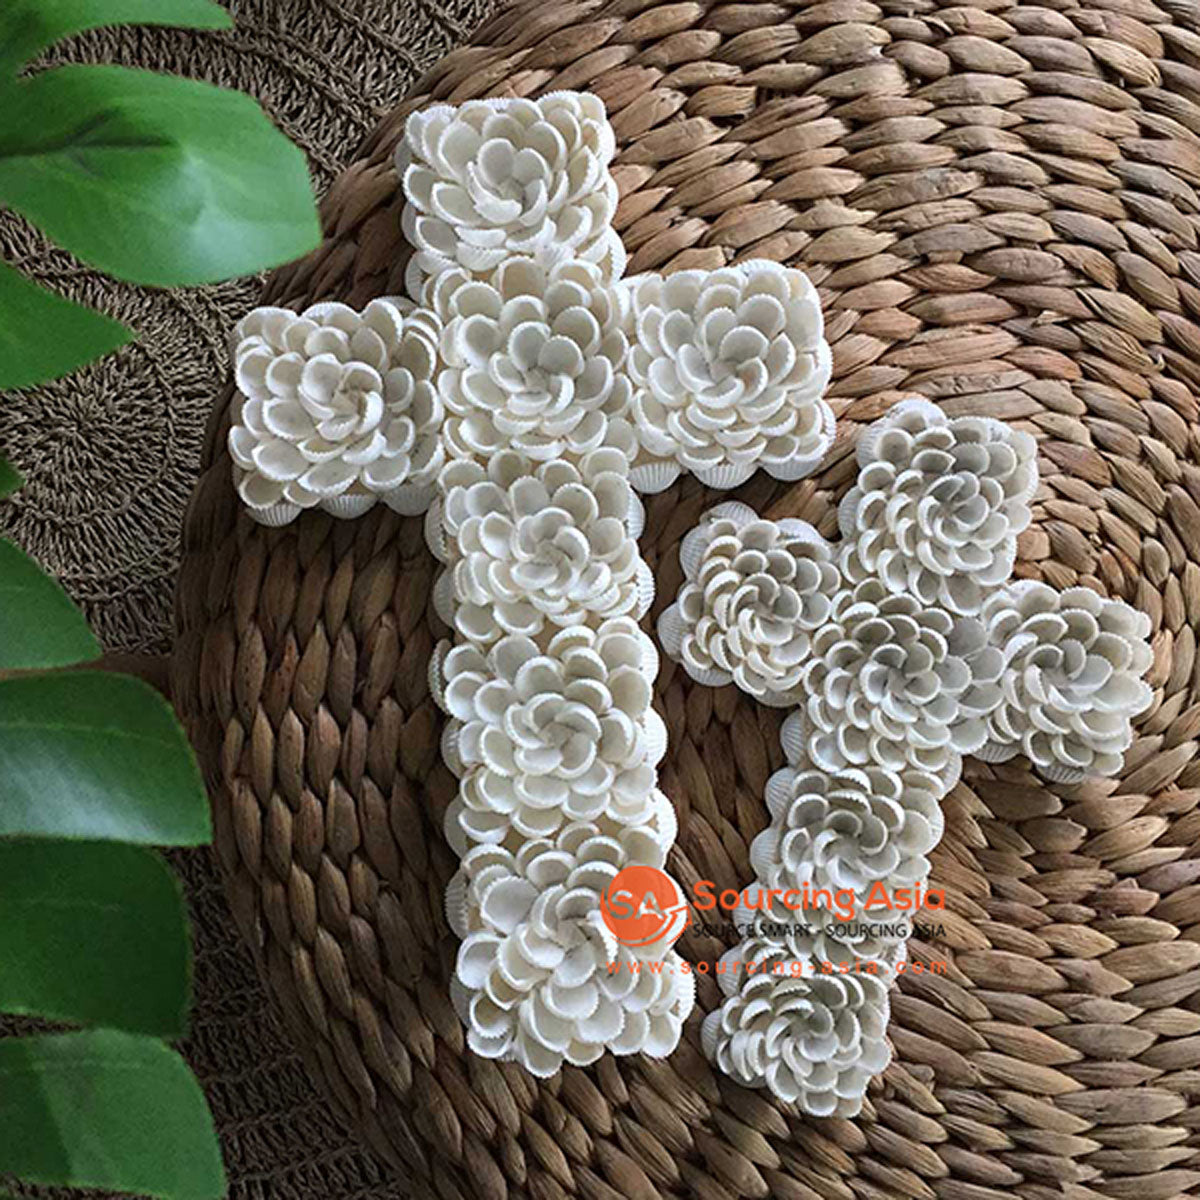 SHL056-1 WHITE SHELL FLOWER STYLE CROSS DECORATION